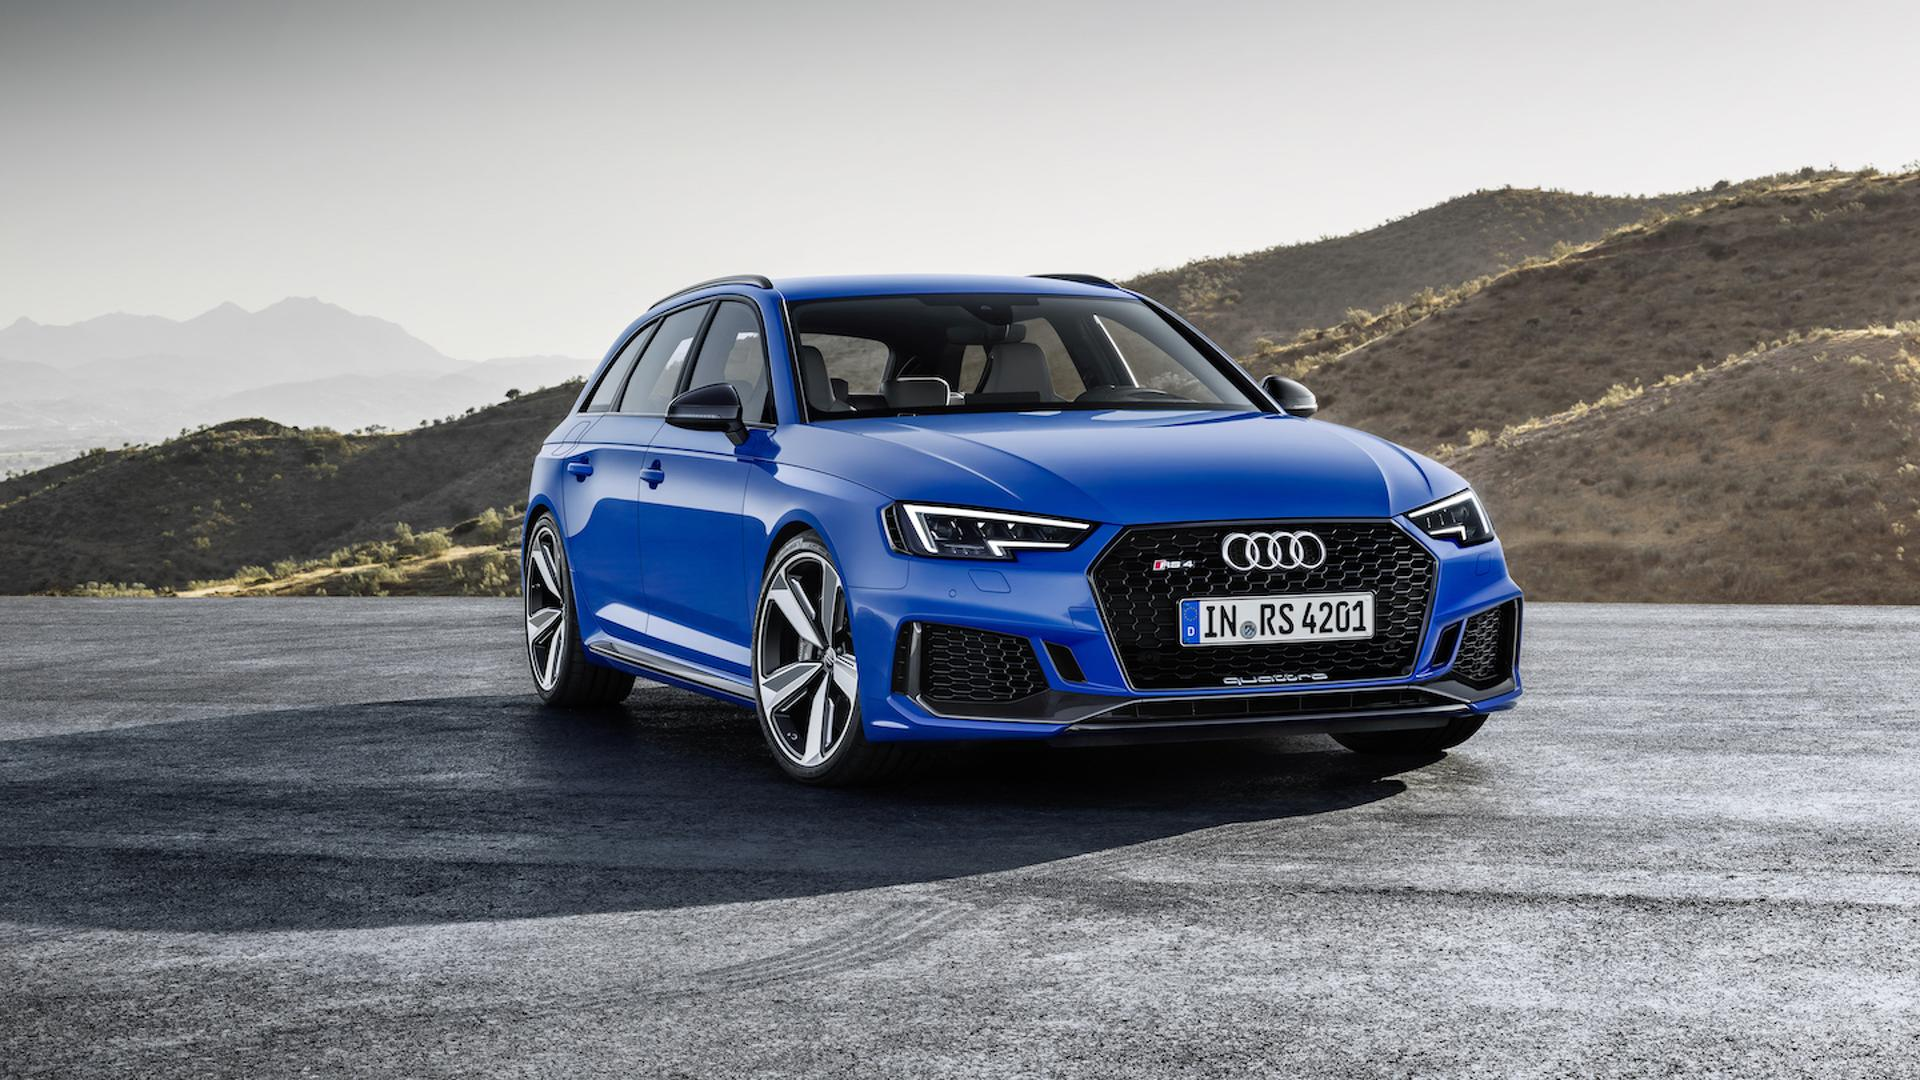 Audi Rs 4 Avant News And Reviews Motor1com